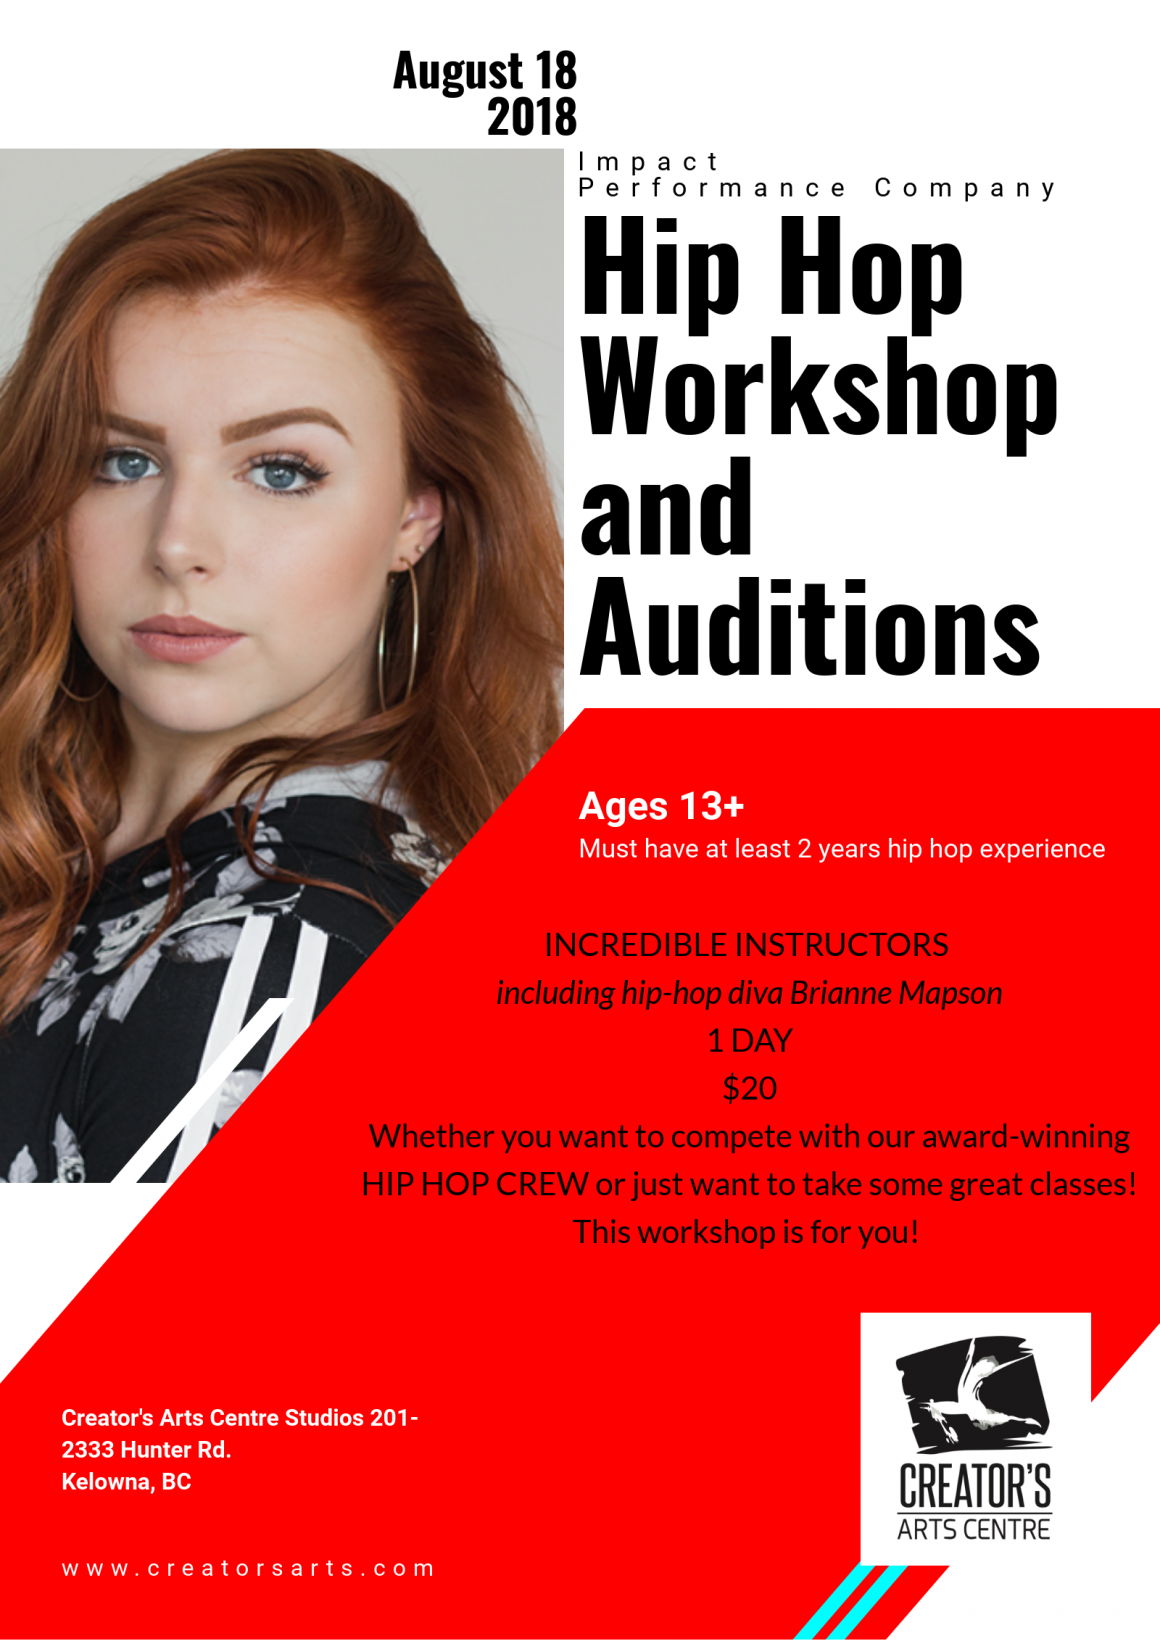 Sr. Hip Hop Crew Auditions